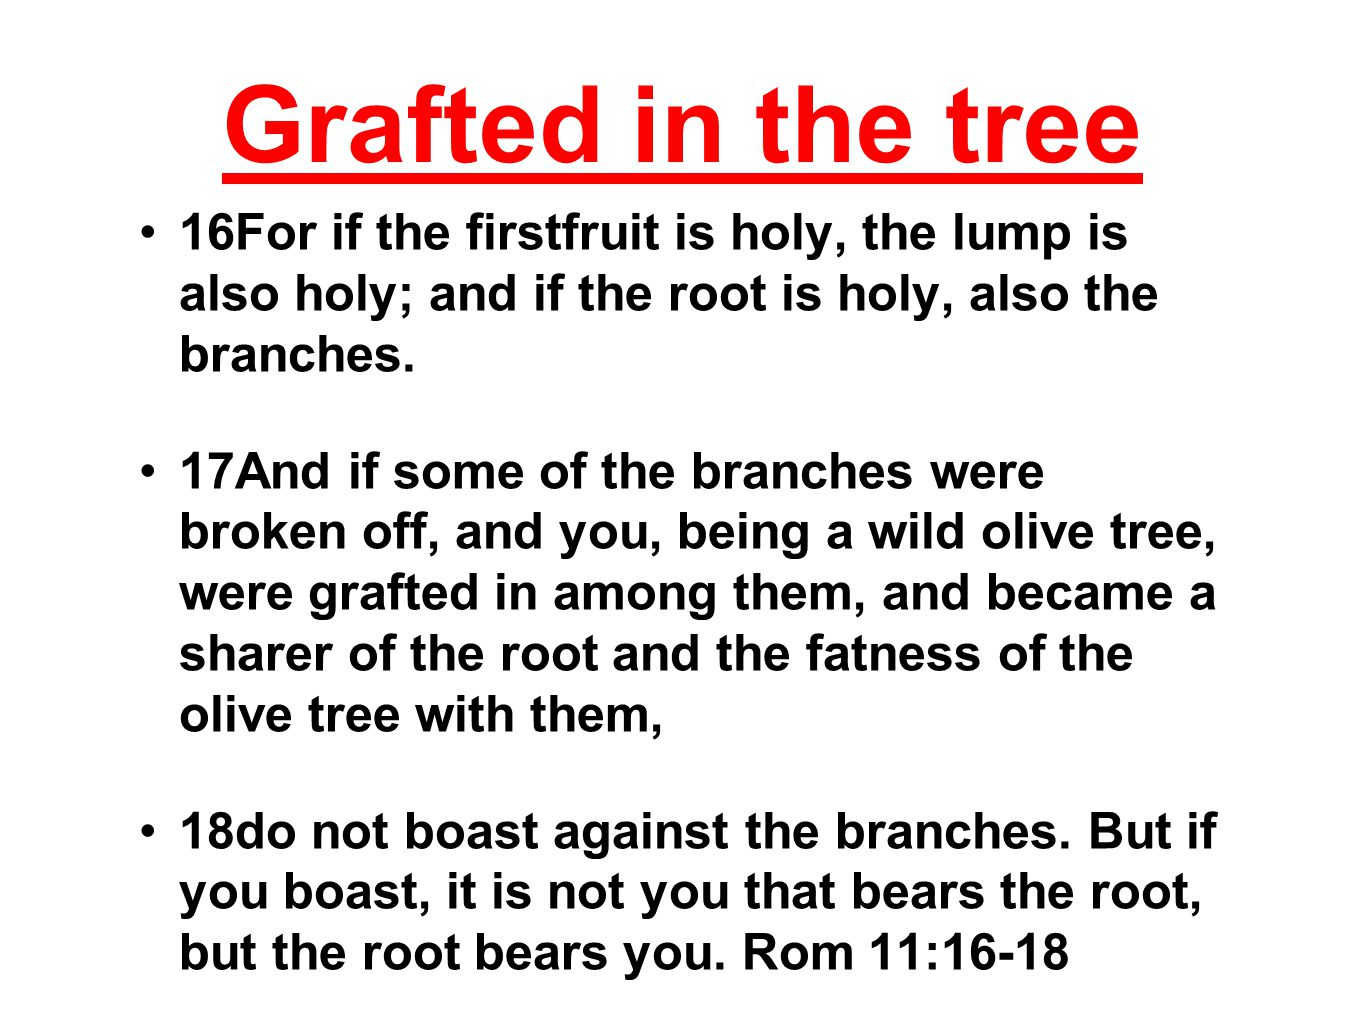 Grafted in the tree 16For if the firstfruit is holy, the lump is also holy; and if the root is holy, also the branches.